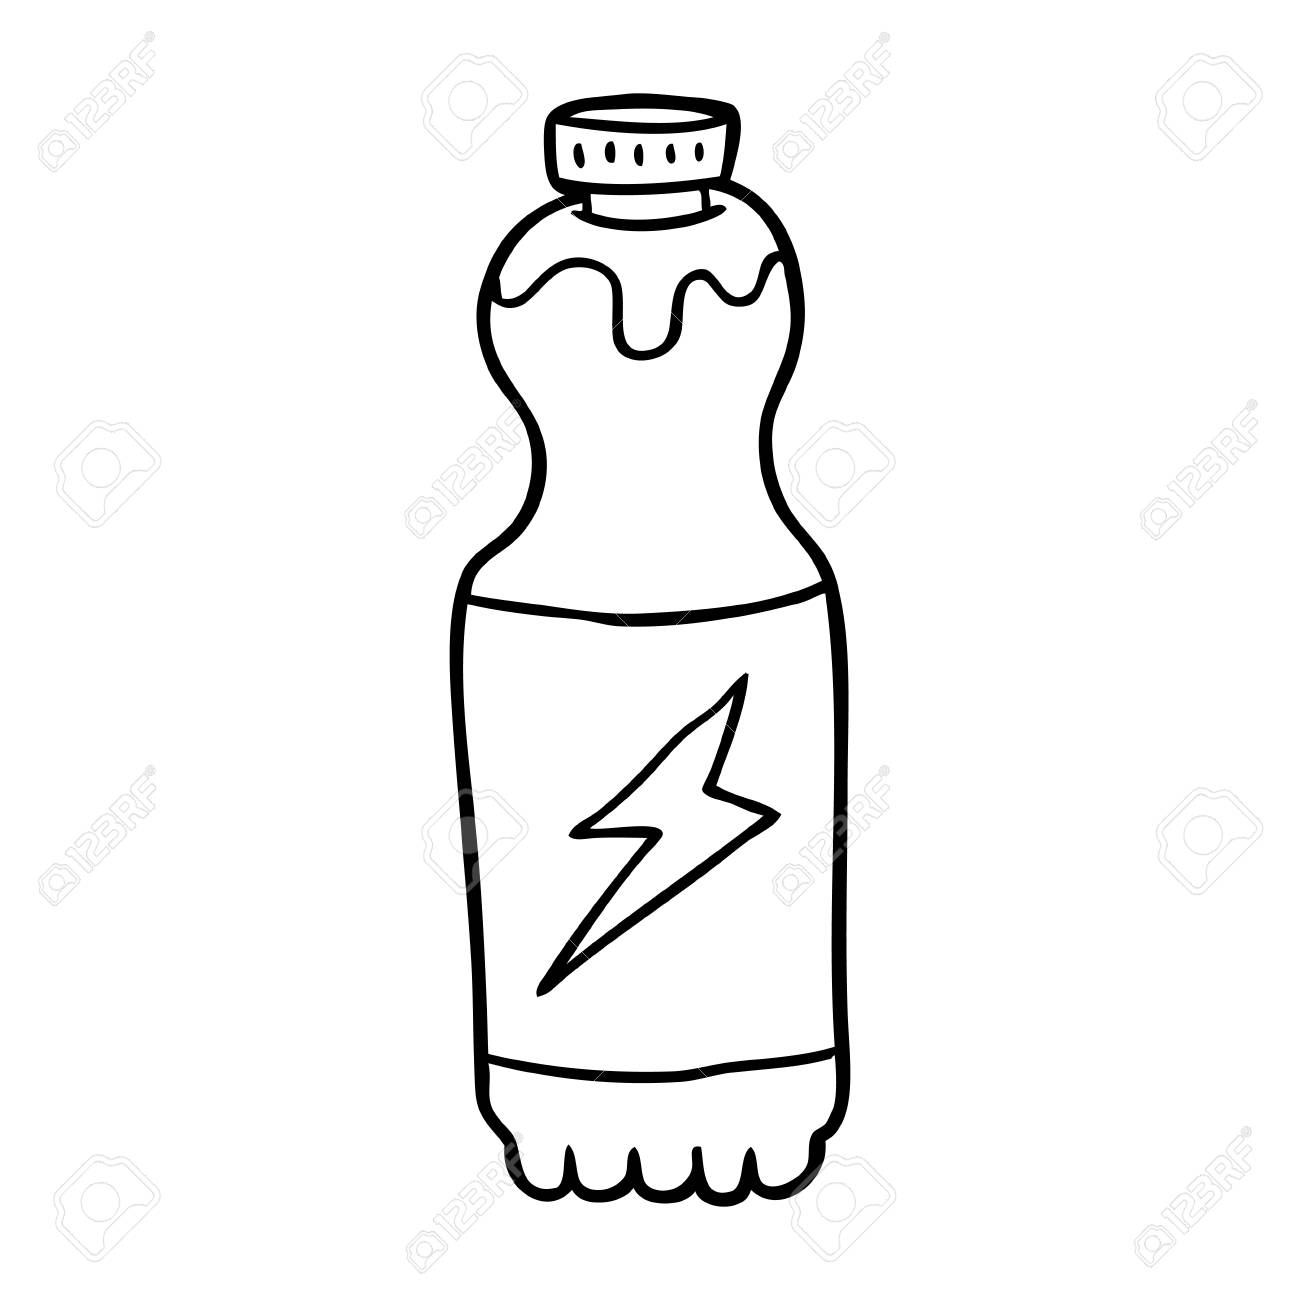 hight resolution of hand drawn soda bottle royalty free cliparts vectors and stock